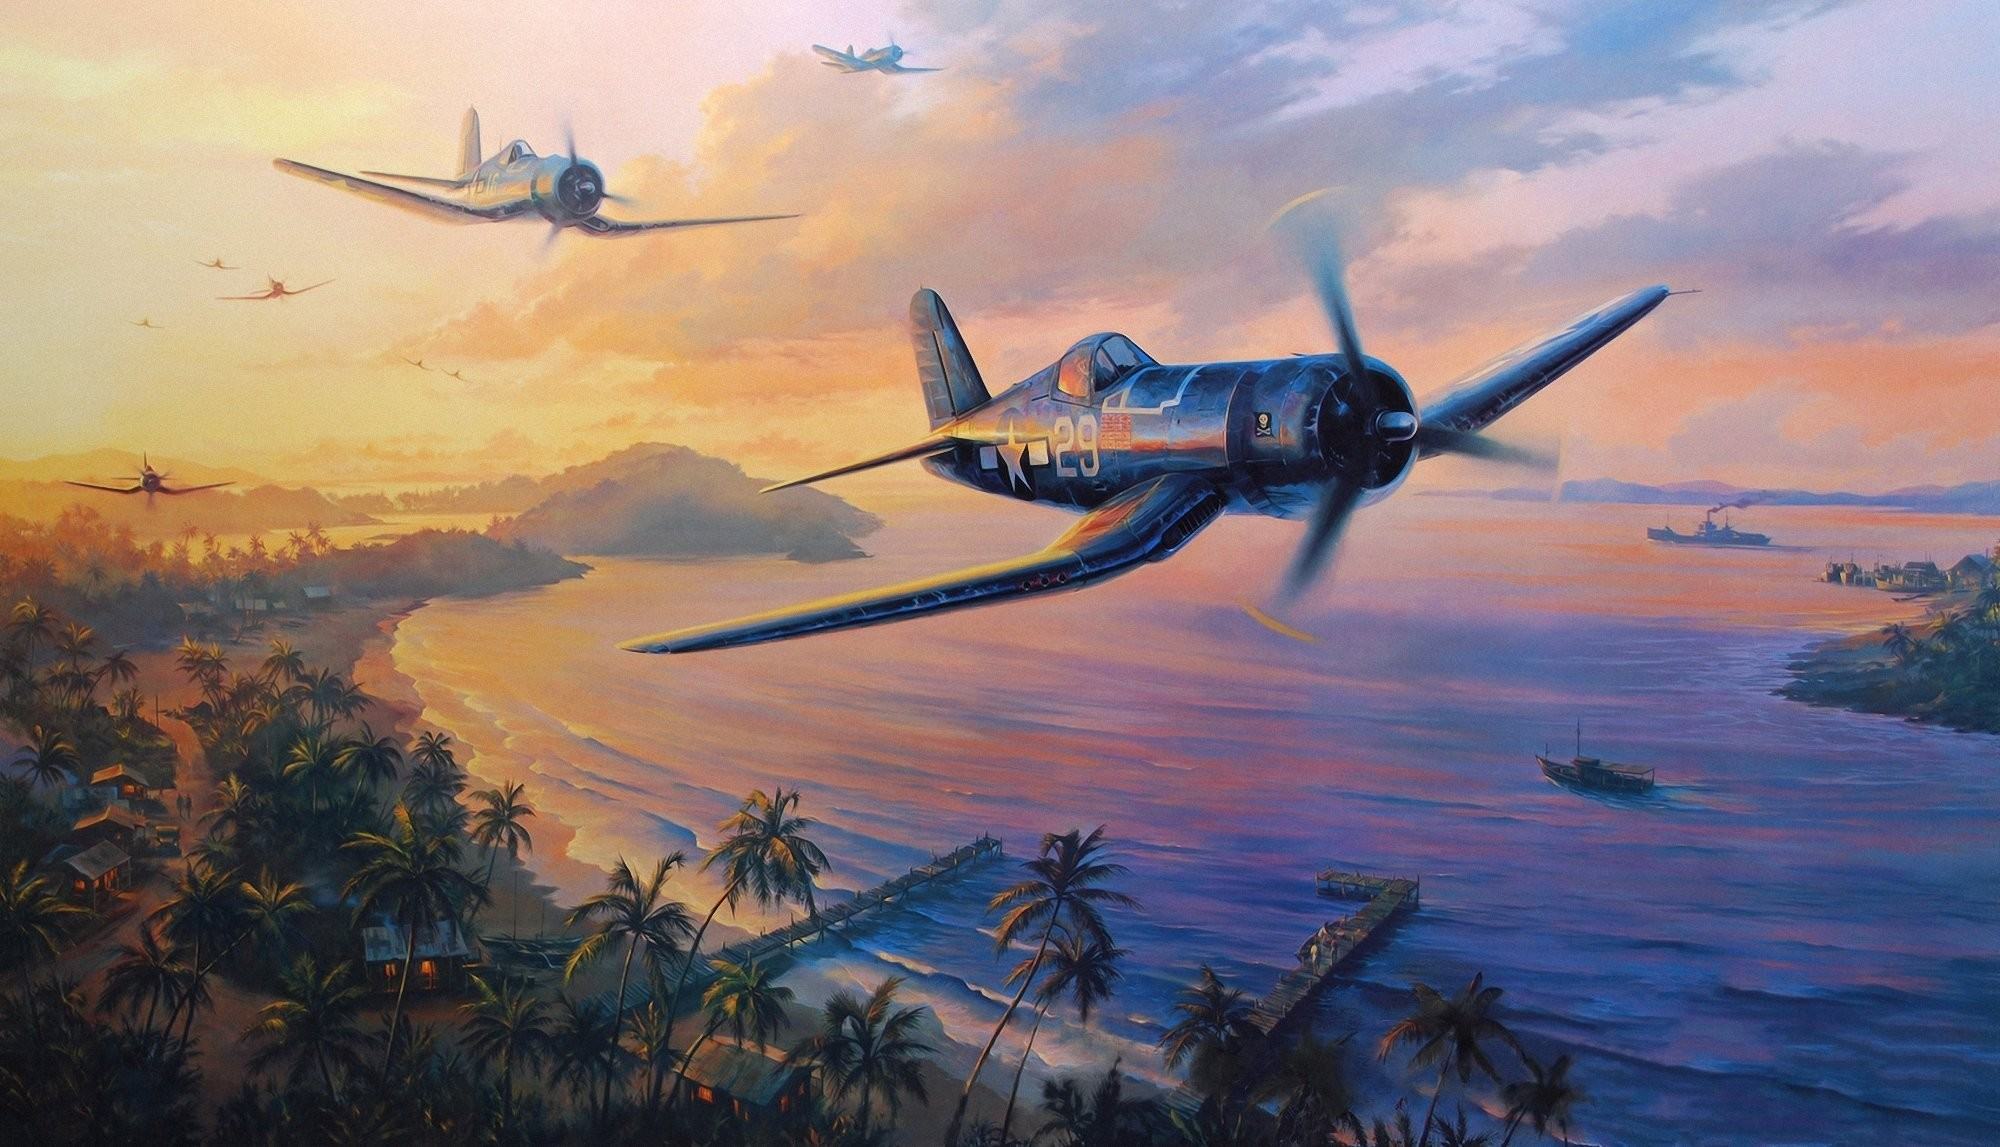 """Wallpaper(s) found for: """"aviation"""" for Android, iPhone and desktop"""